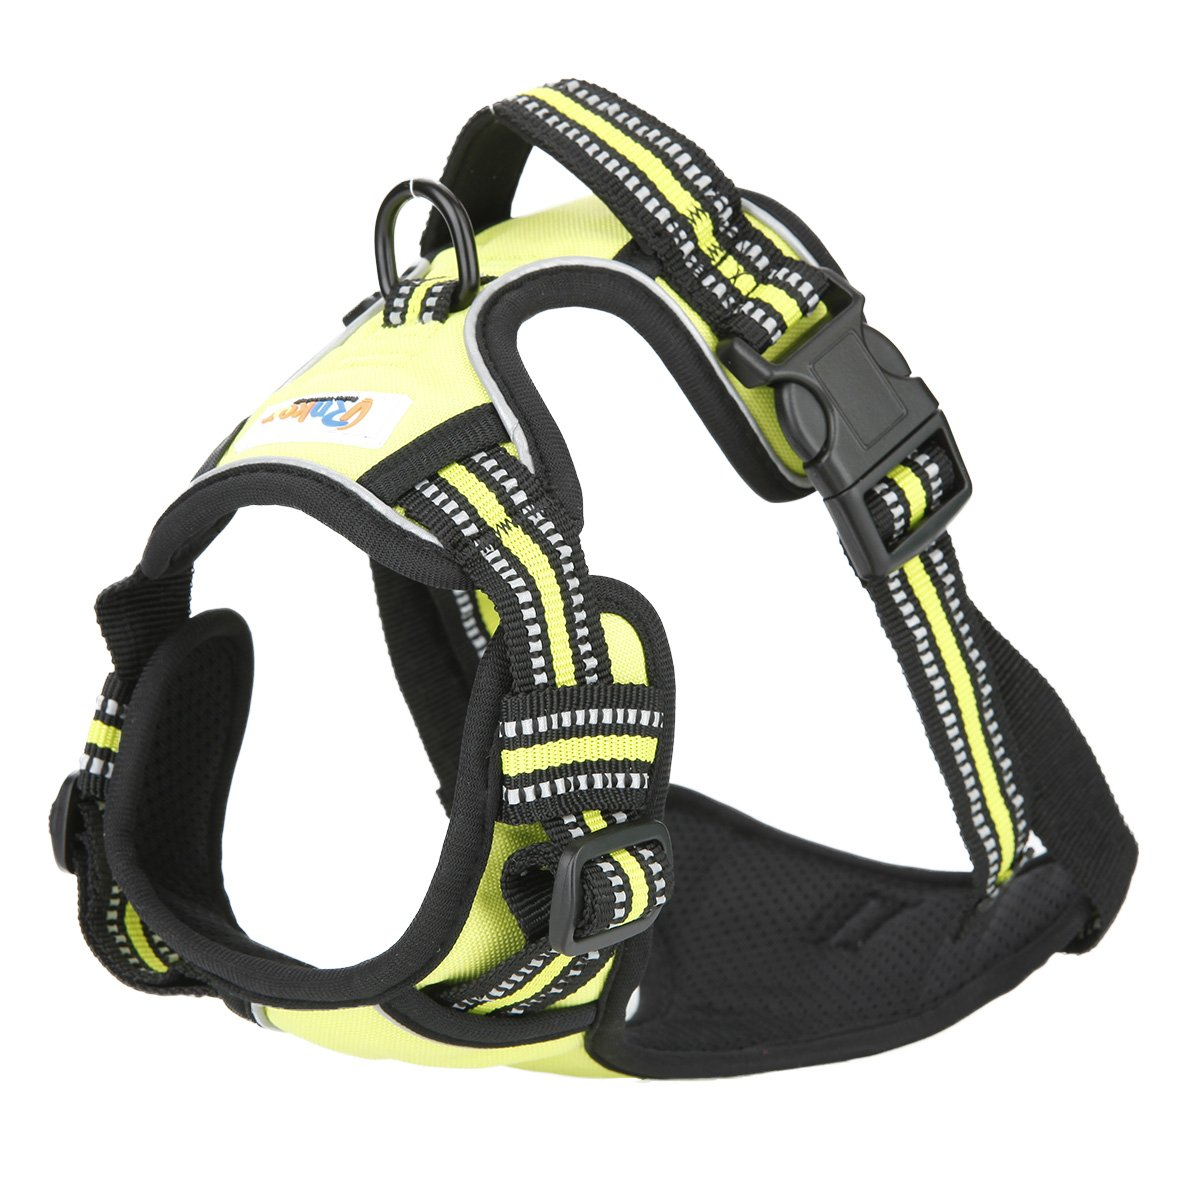 Rnker Front Range Dog Harness, 3M Reflective Outdoor Pet Vest with Handle and Leash Attachments for Small Dogs (Green)